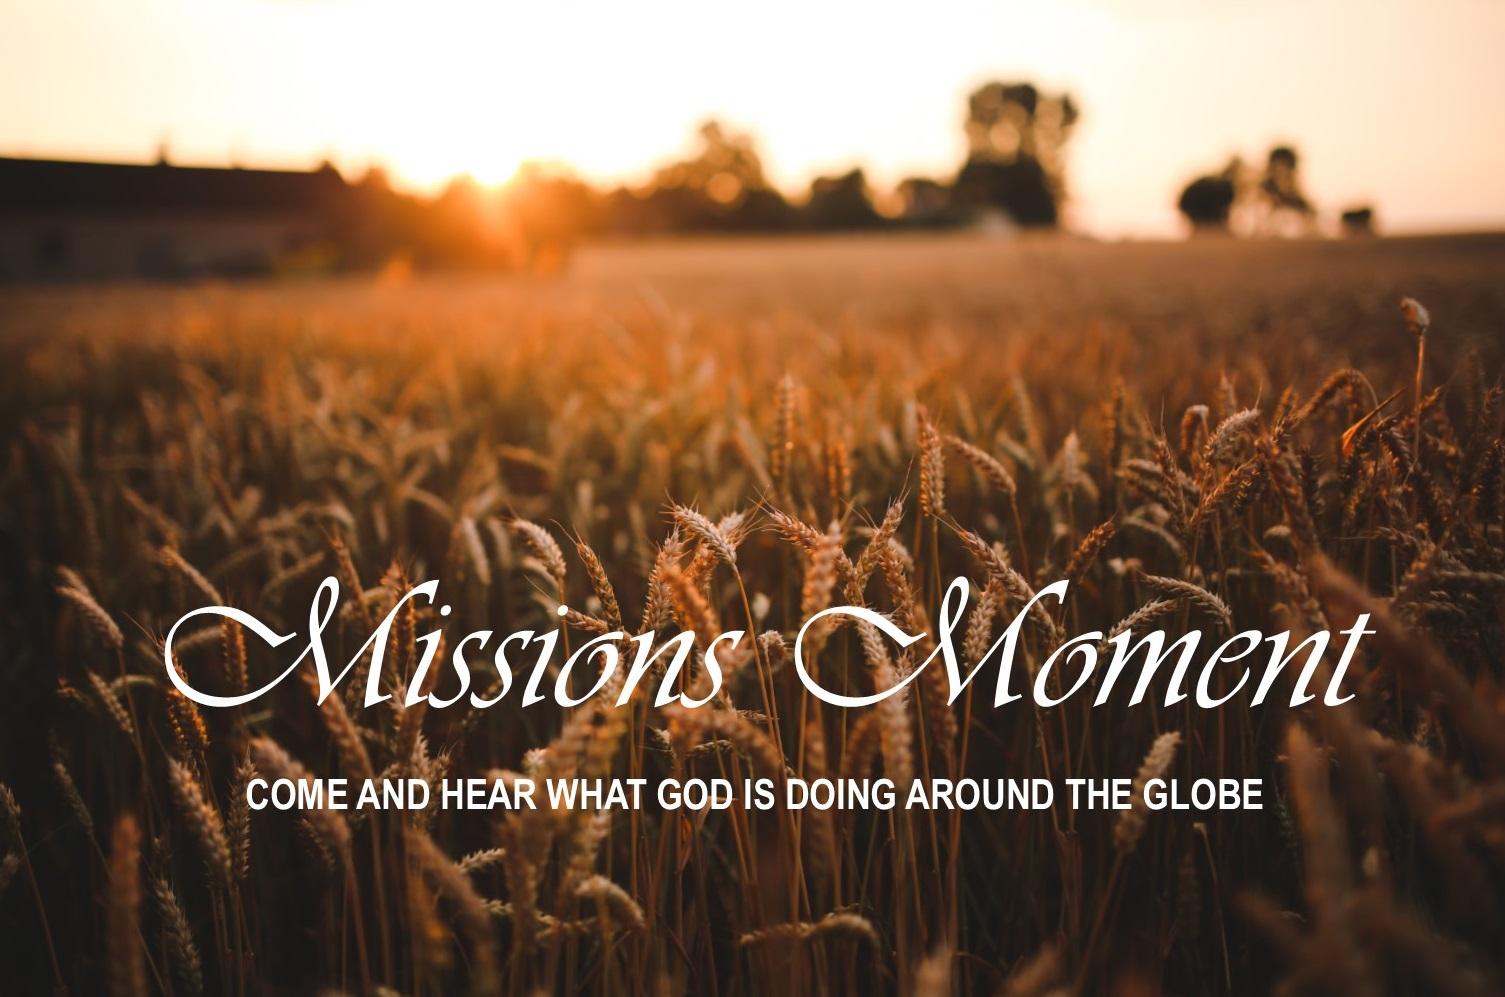 Missions Moment Image image